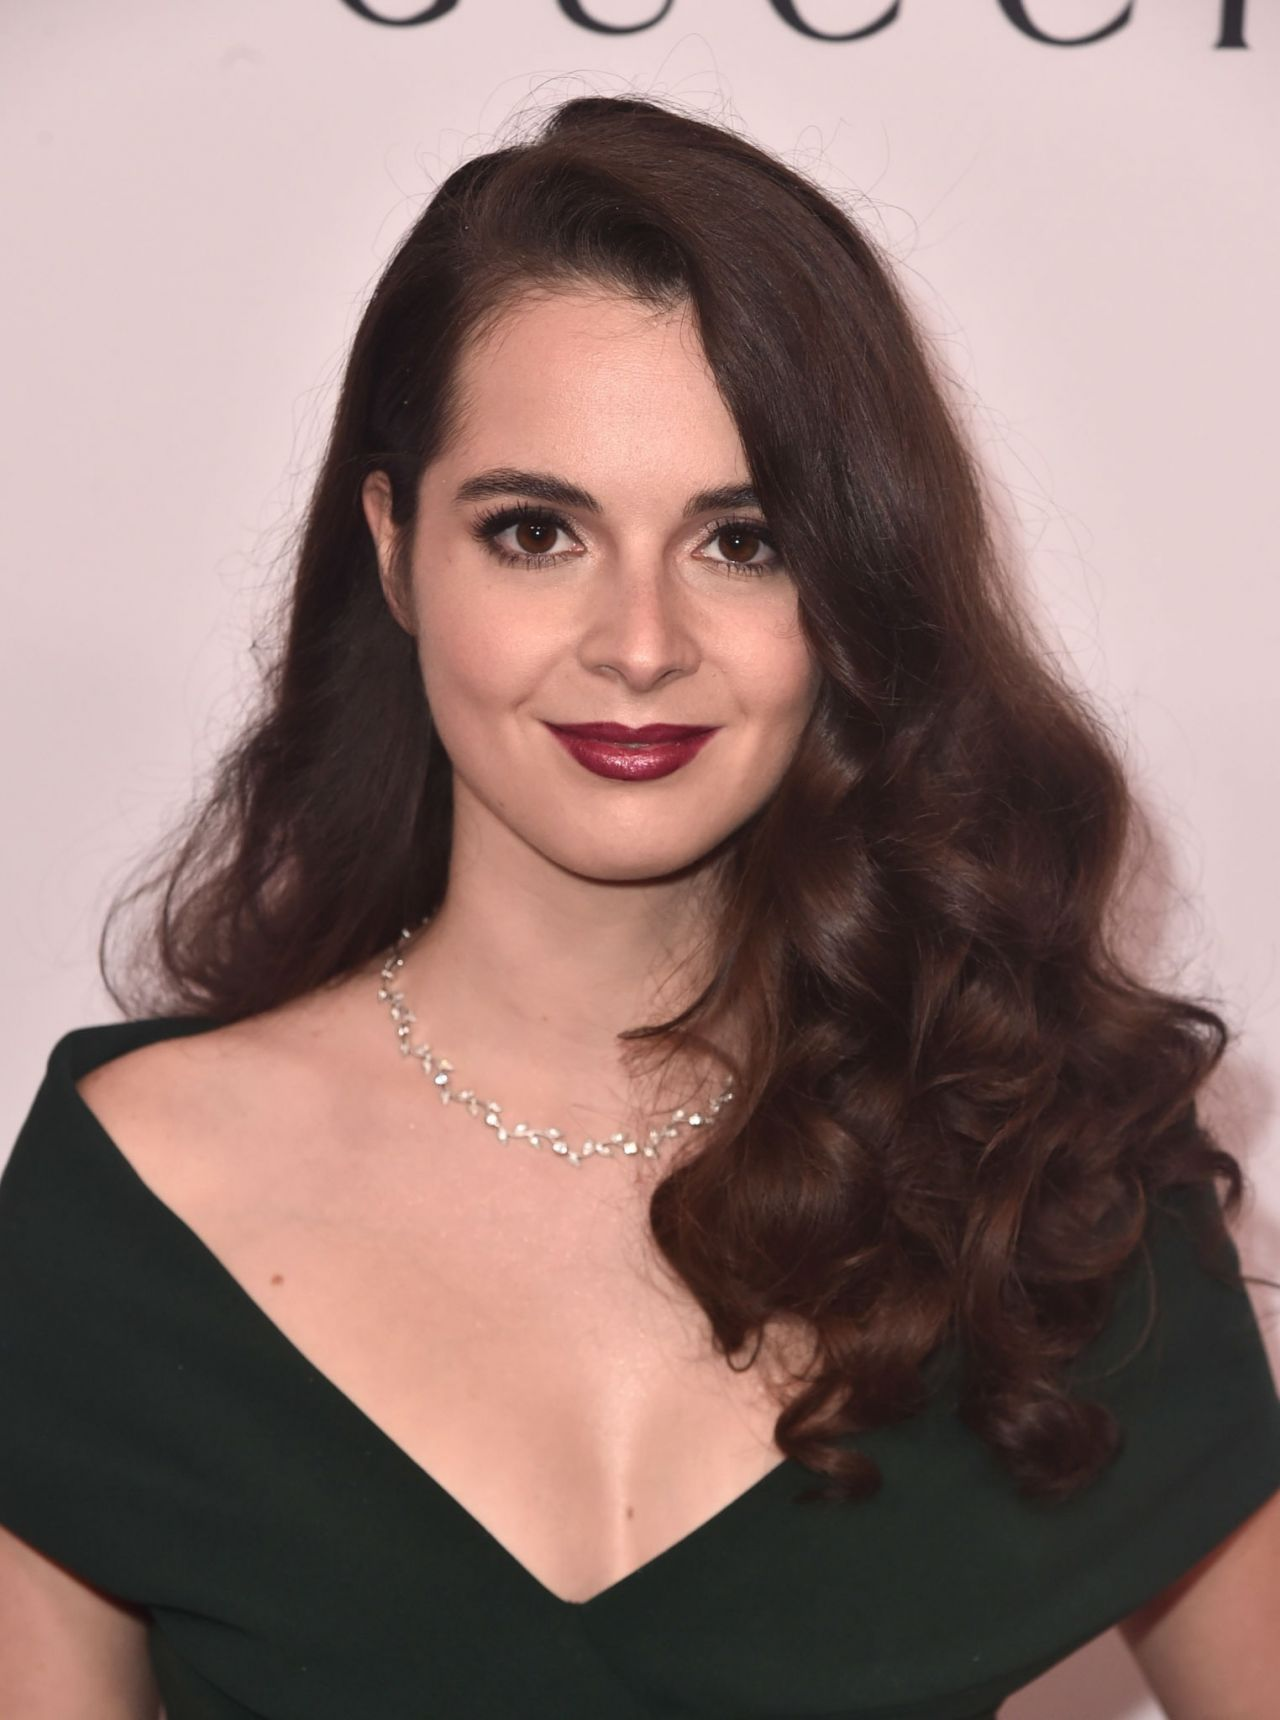 vanessa-marano-make-equality-reality-gala-in-beverly-hills-12-04-2018-5.jpg (1280×1720)